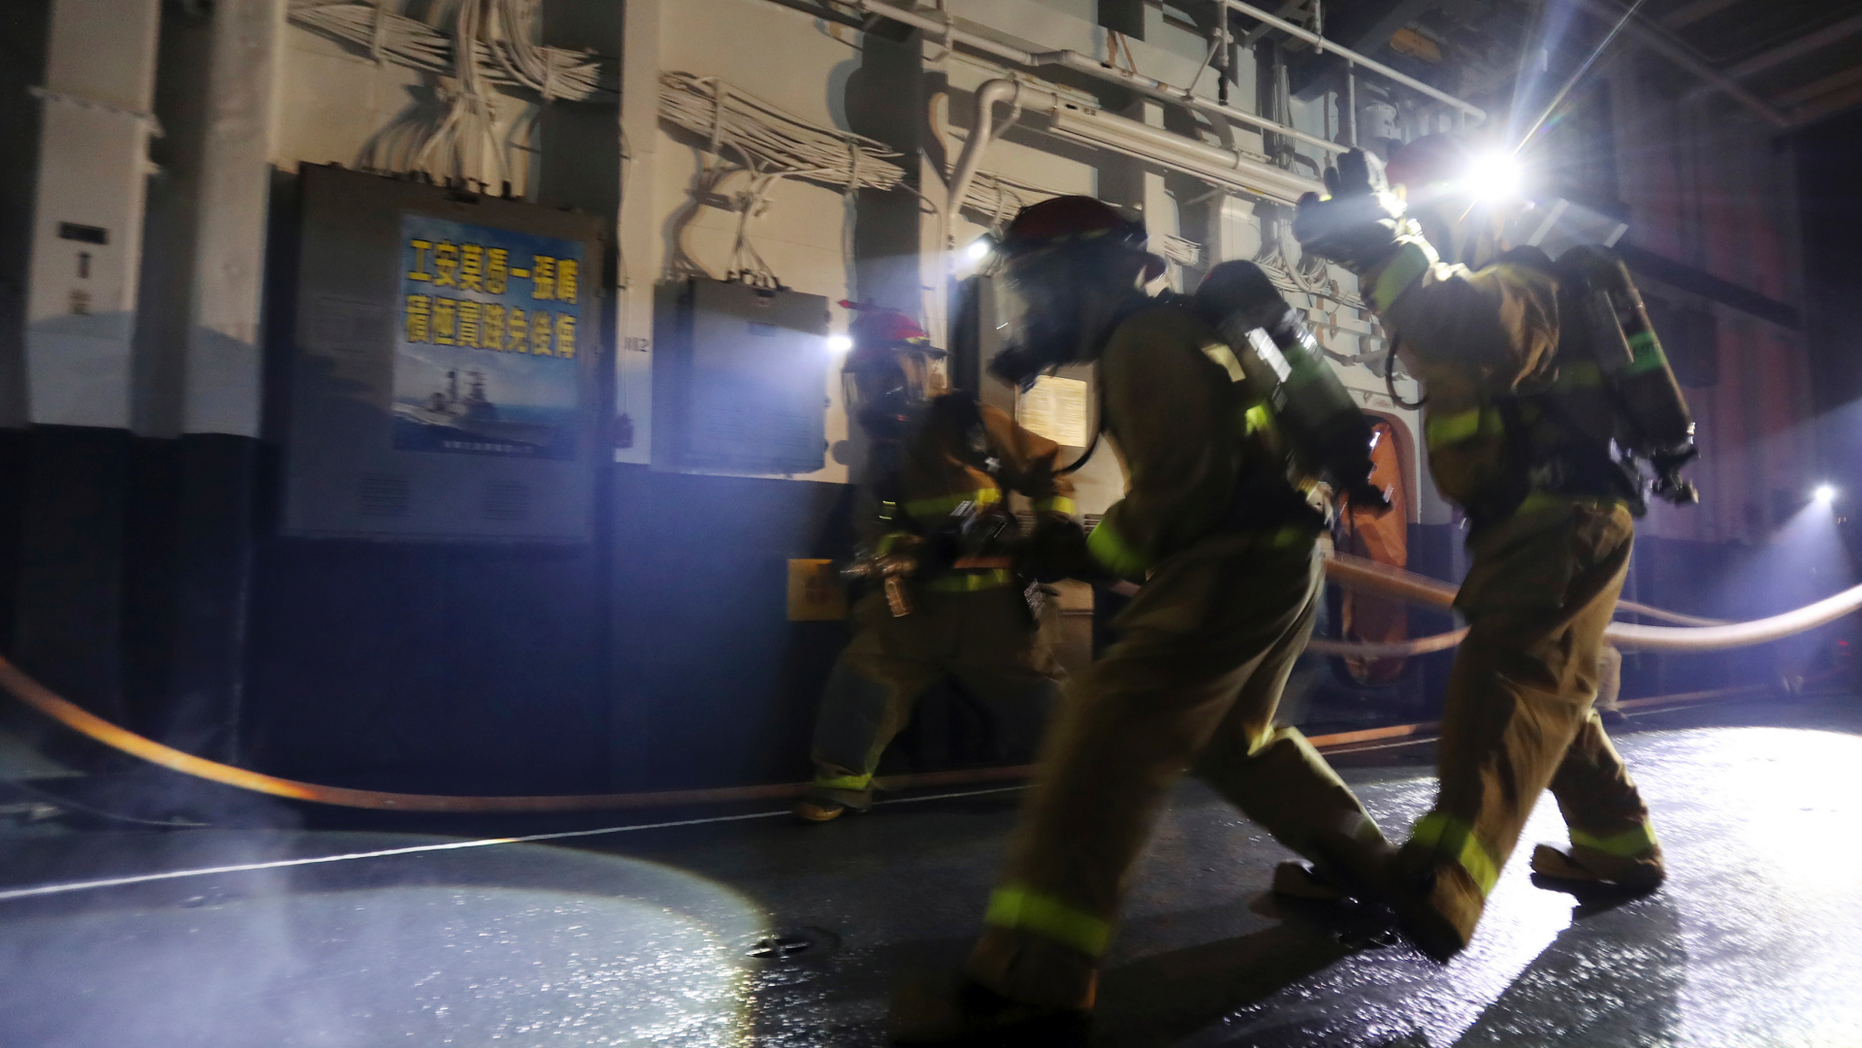 I this photo taken on Wednesday, May 21, 2019, Taiwan navy personnel simulate a fire drill inside the Knox-class frigate during an exercise in the Suao port in Yilan County, eastern Taiwan. (AP Photo/Chiang Ying-ying)